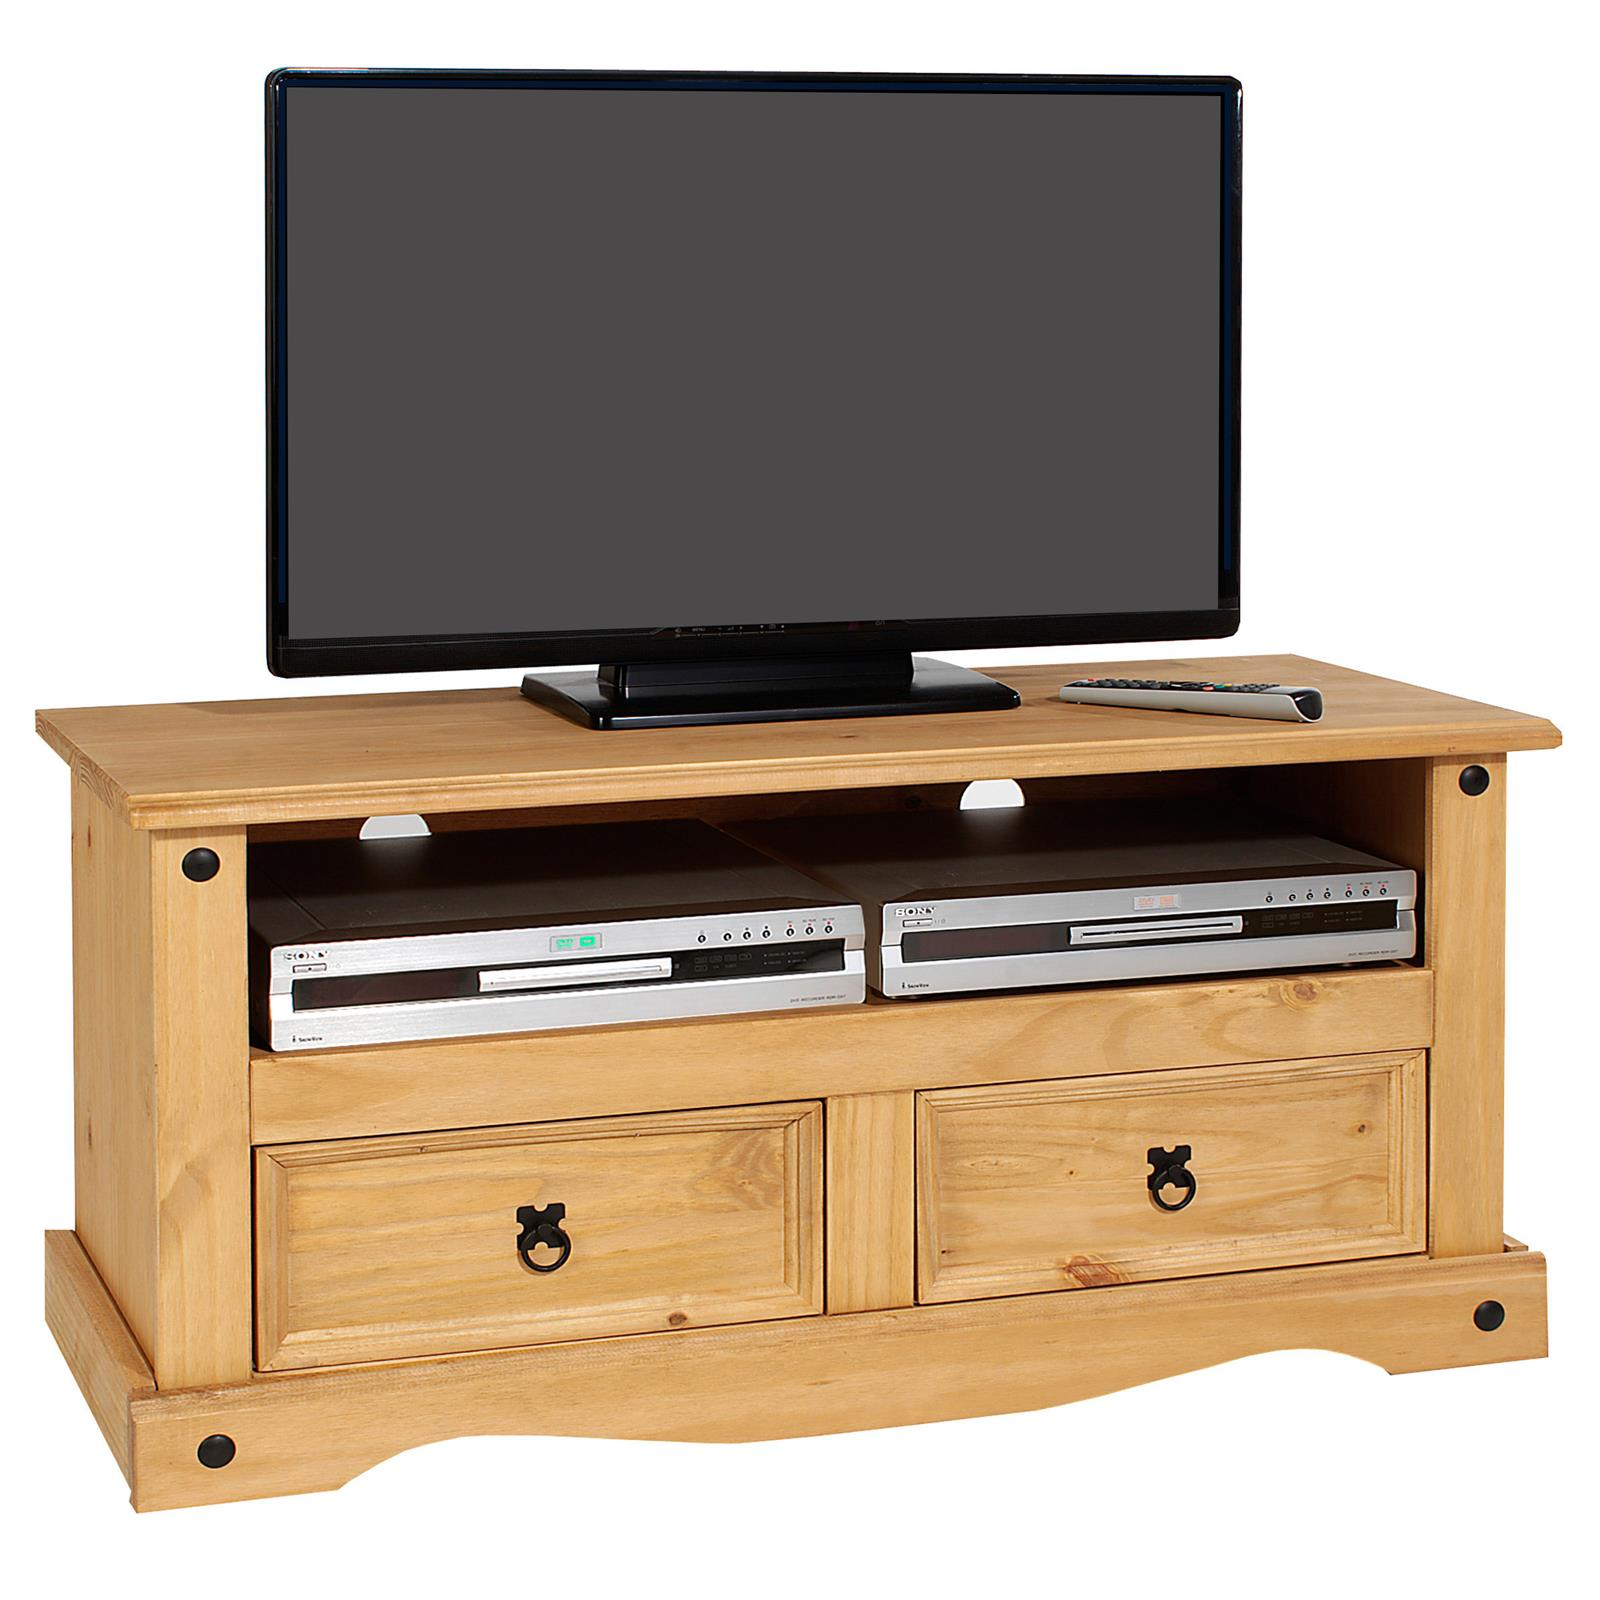 meuble tv en pin salsa style mexicain 2 tiroirs mobil meubles. Black Bedroom Furniture Sets. Home Design Ideas